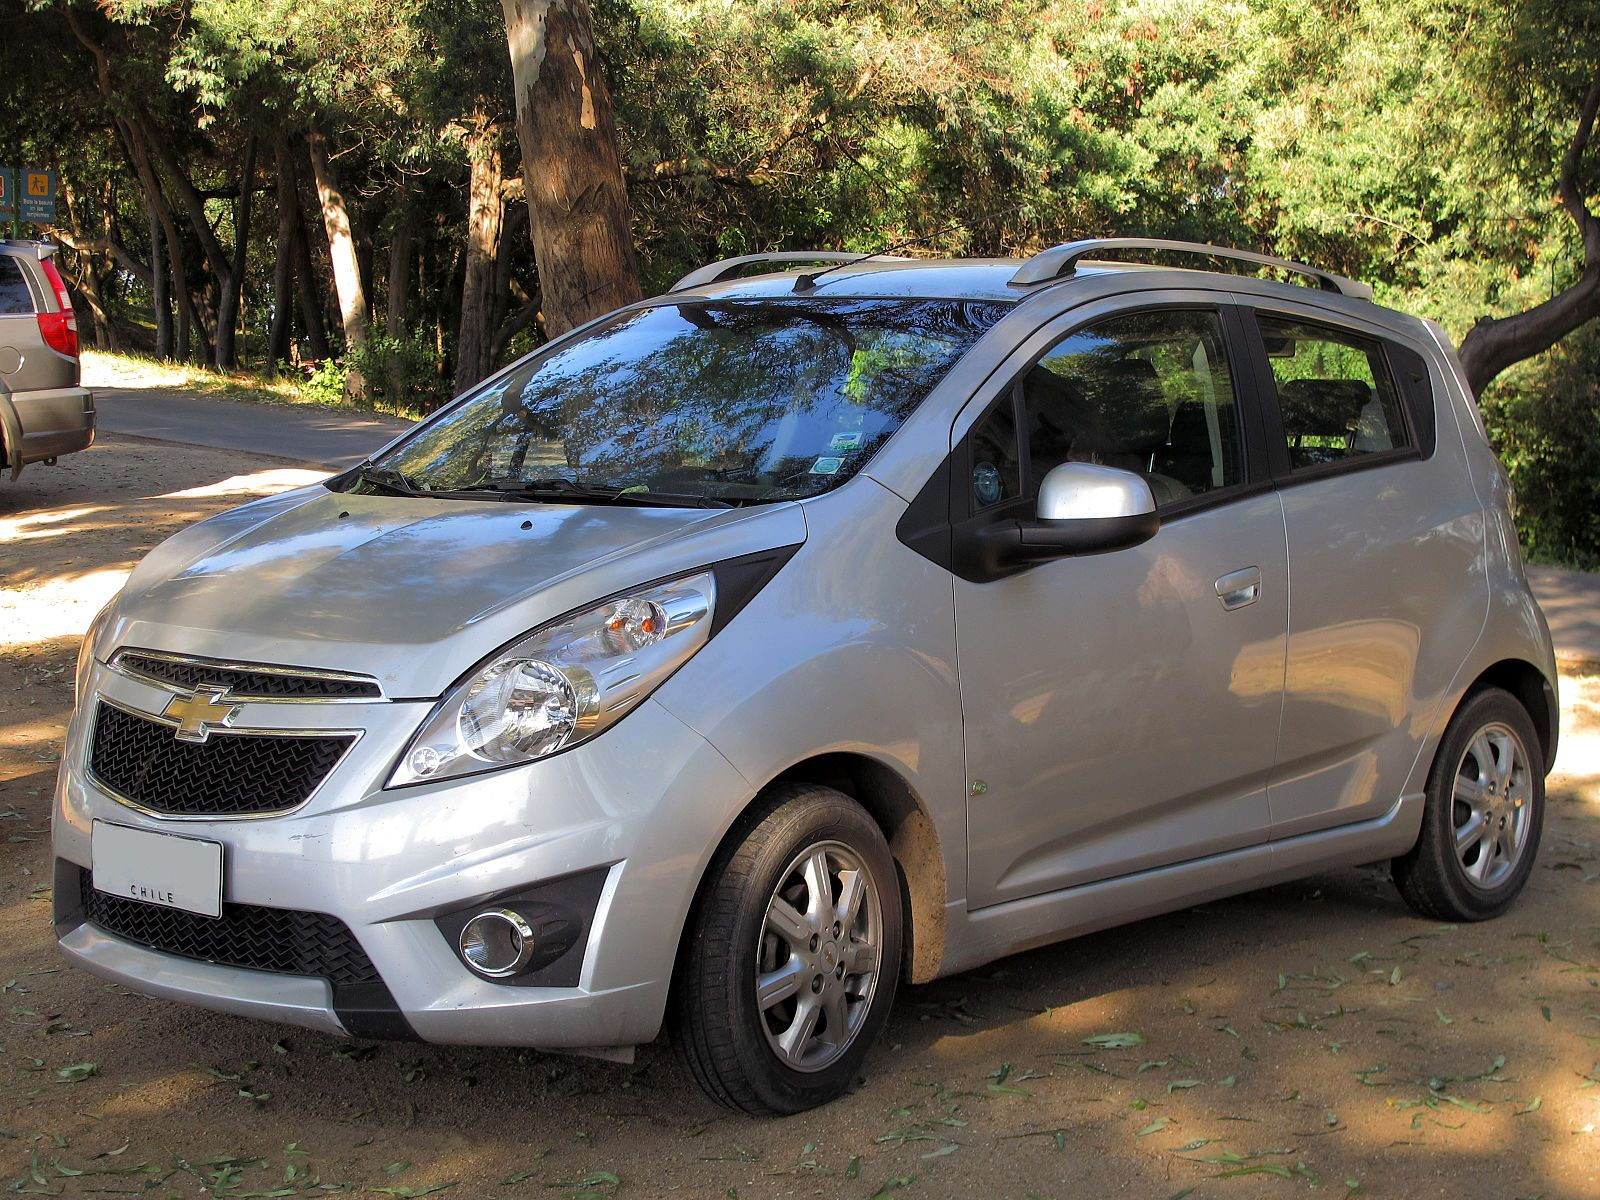 German tuning firm kbr motorsport have taken the chevrolet spark known as beat in india under its wing and given the small city car from the amer